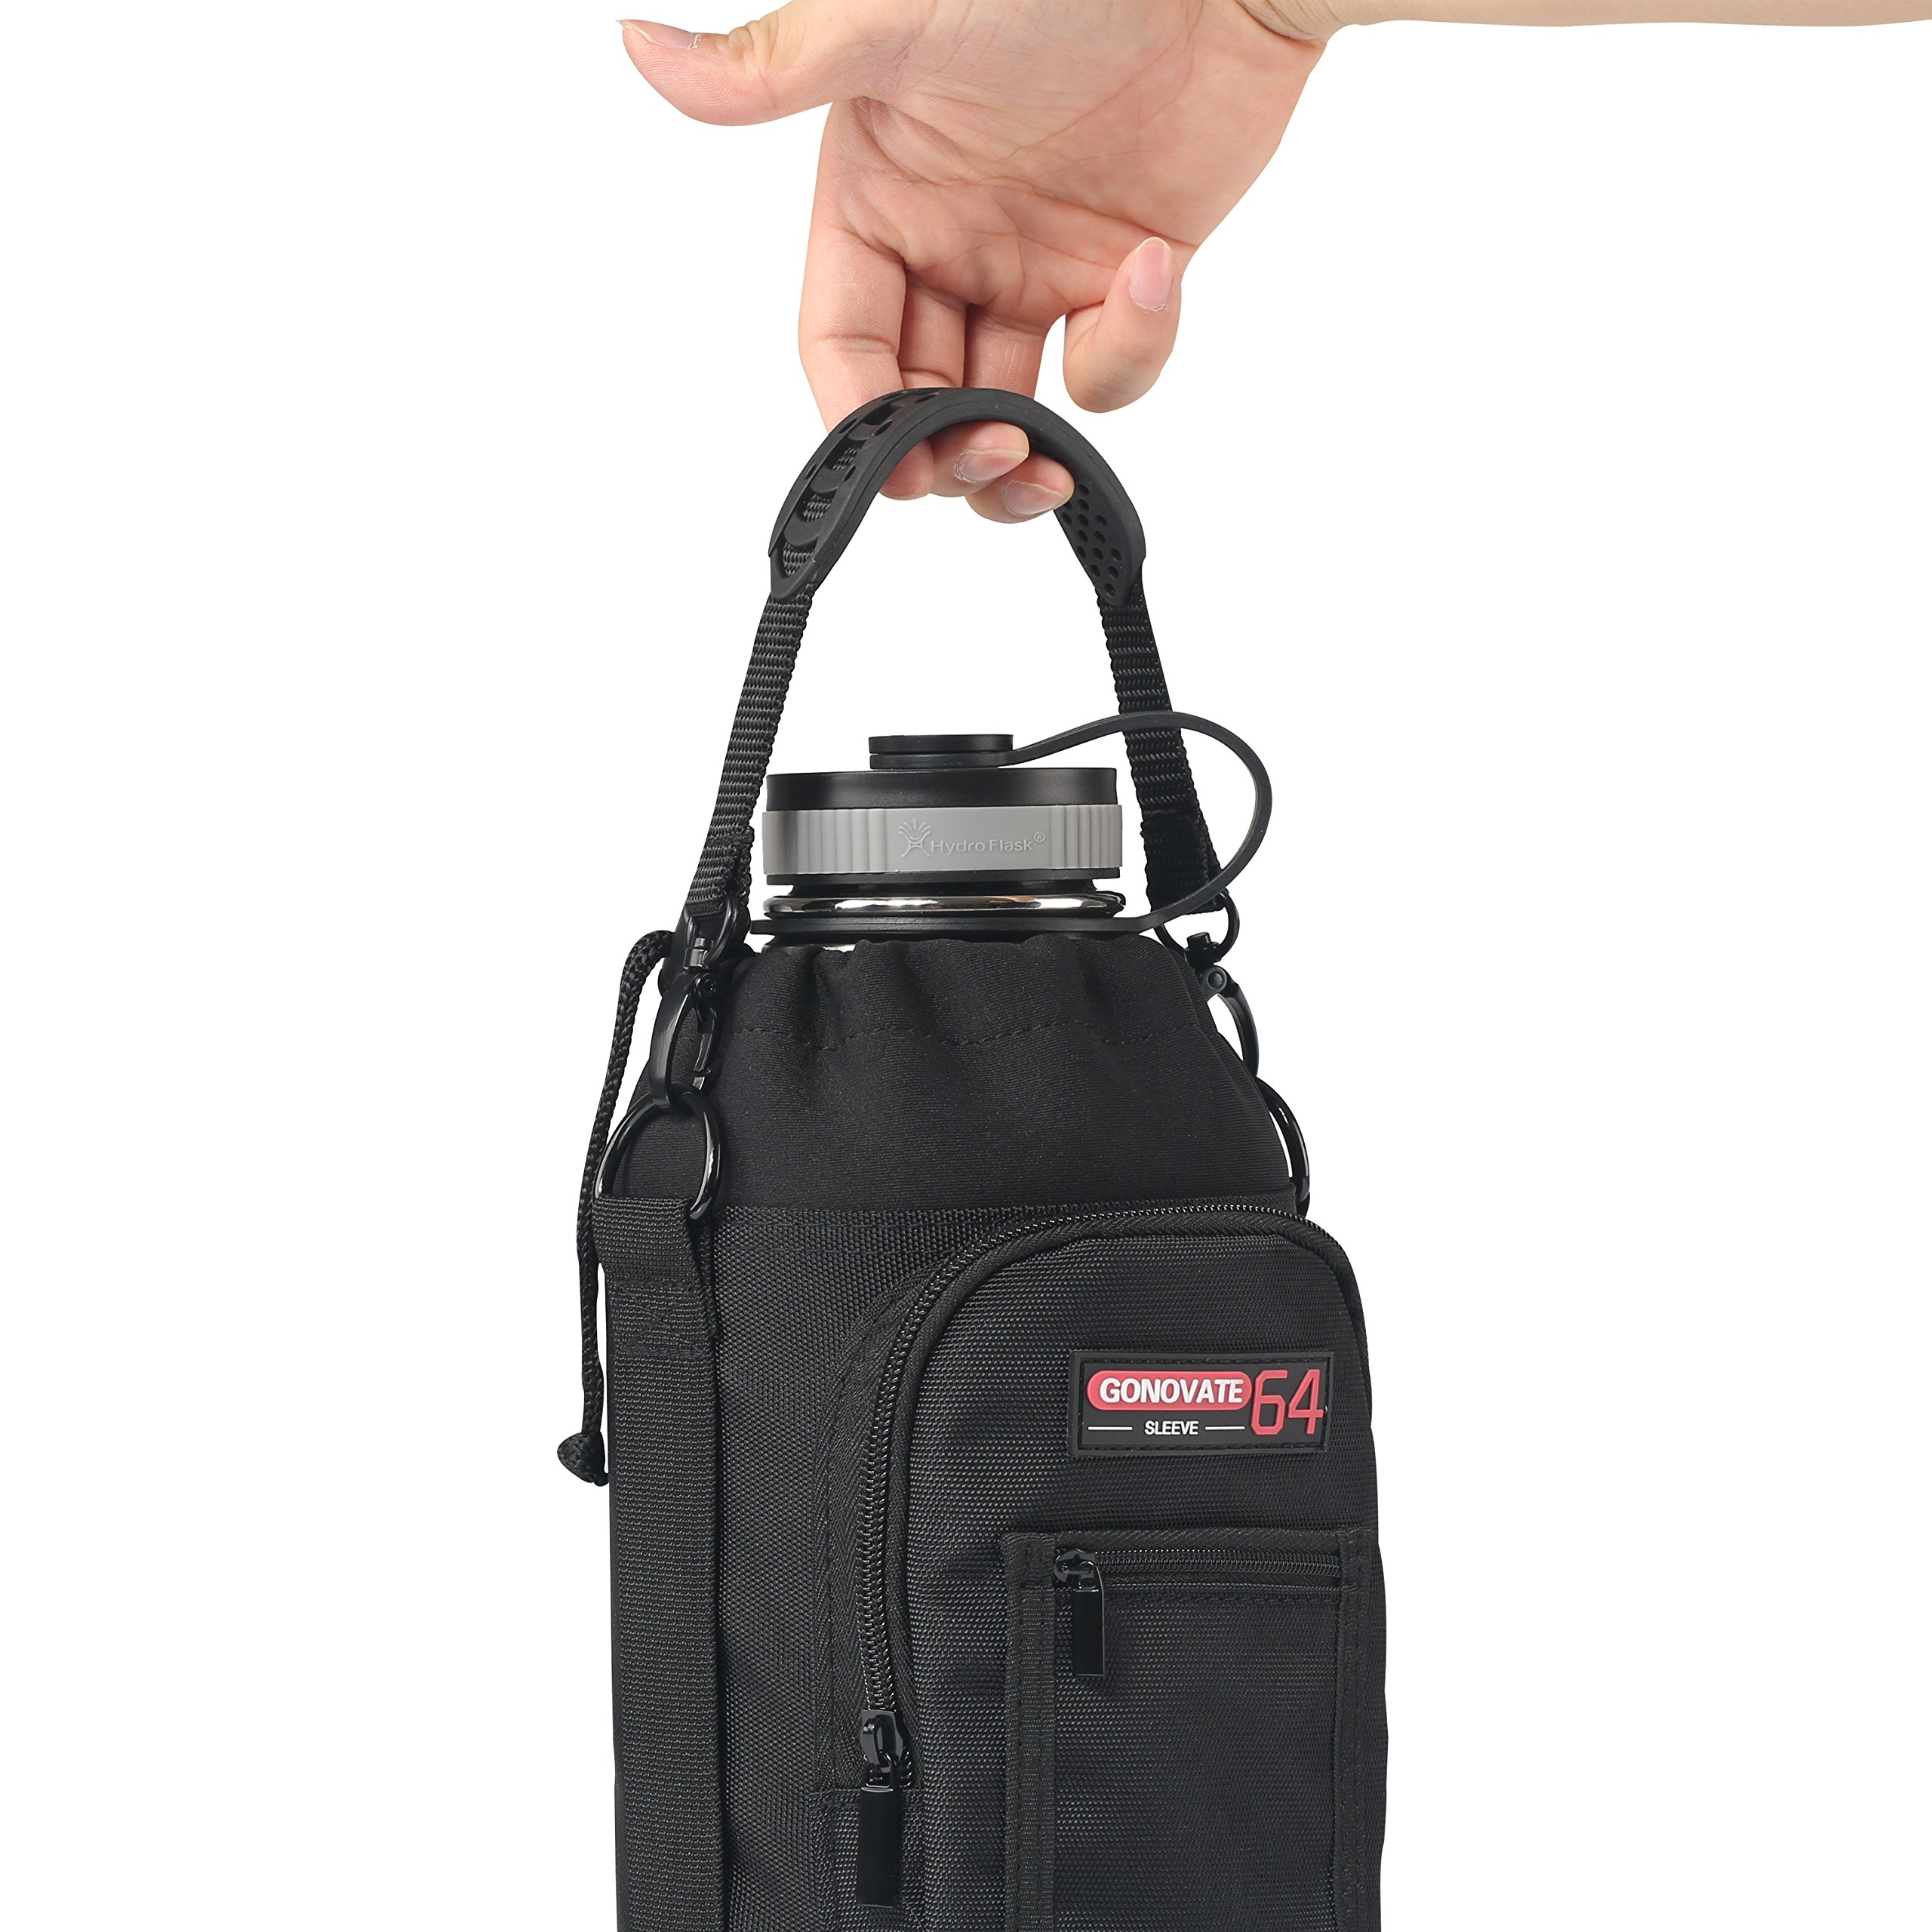 GoNovate 64 oz Pouch/Sleeve with Carrying Handle for Hydro Flask Bottles, w/2 Pockets and Adjustable Shoulder Strap by GoNovate (Image #2)